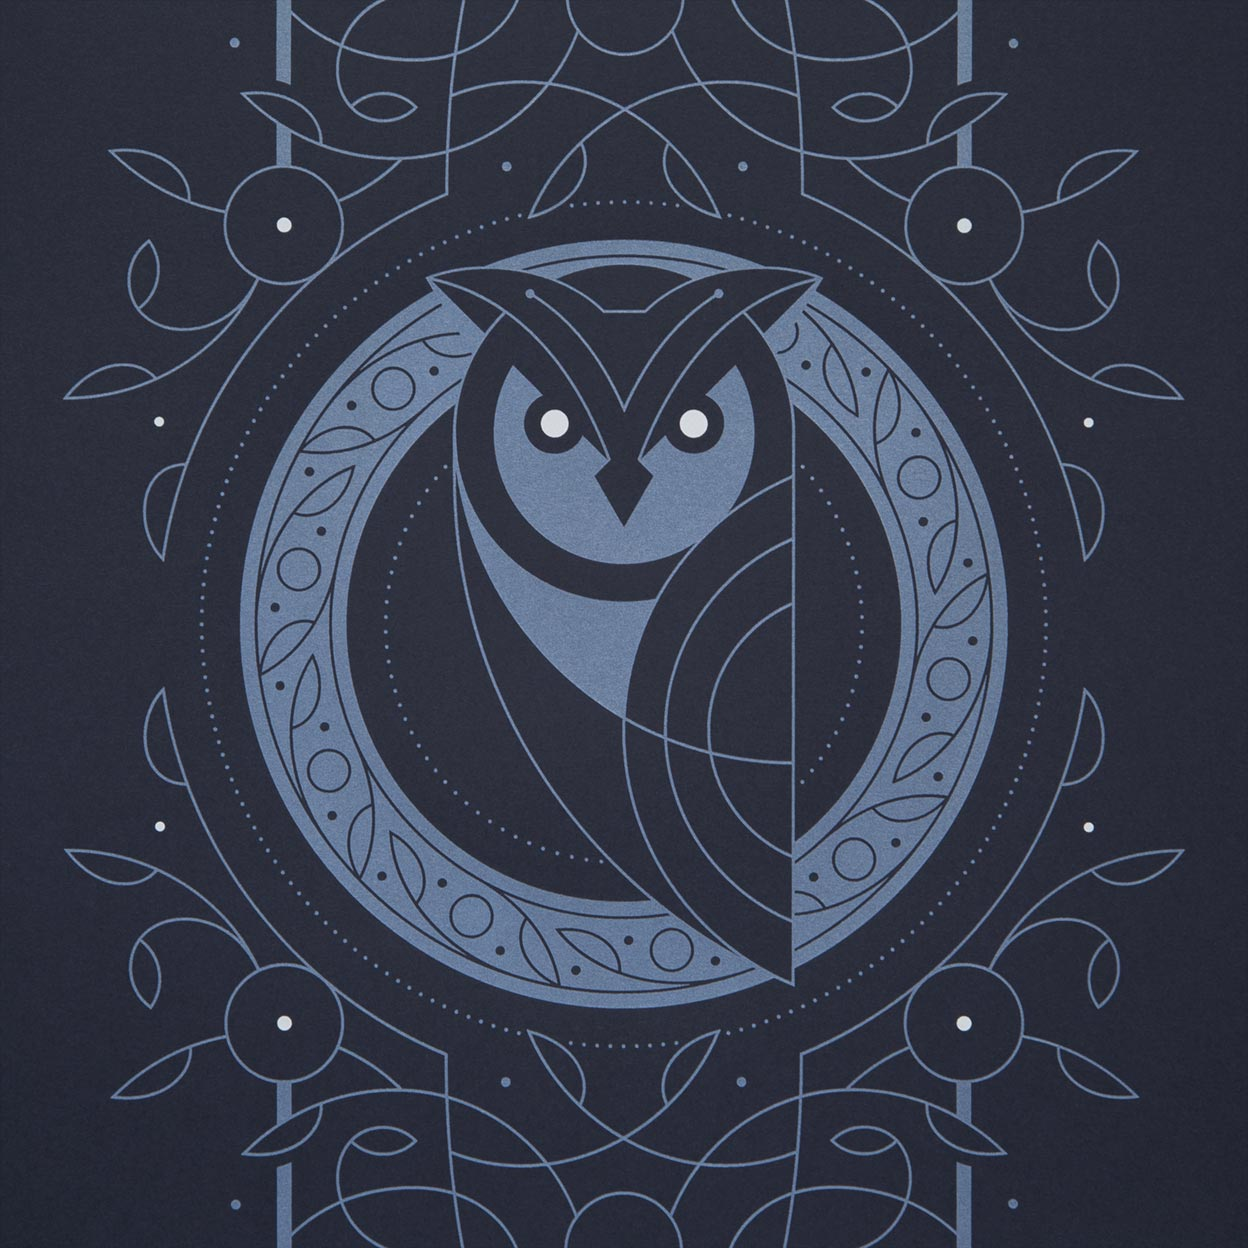 Night Owl Screen Print by Dan Forster created for The Lost Fox